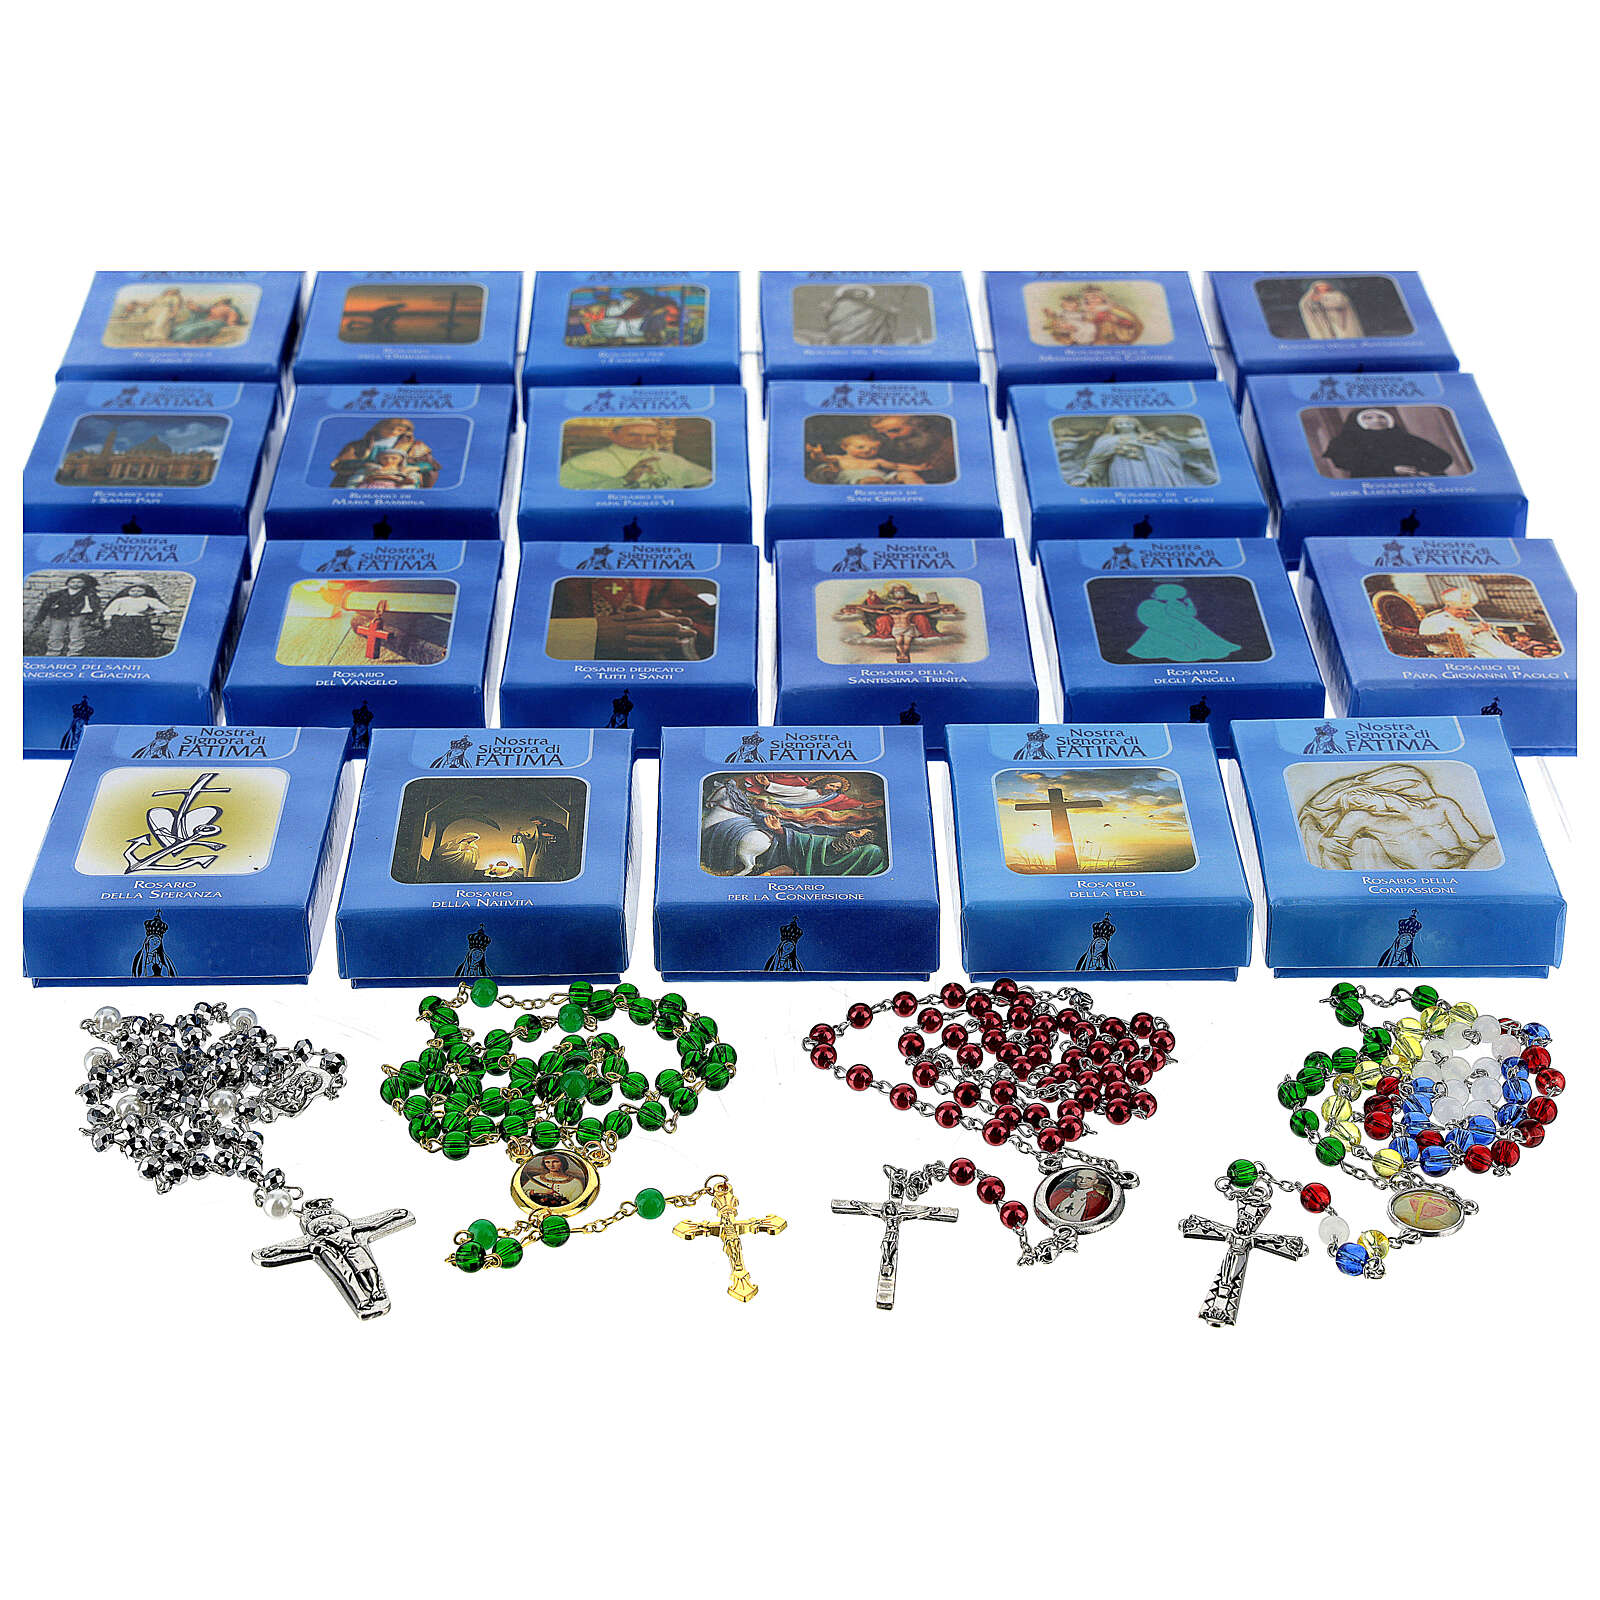 FULL COLLECTION - Faith Collection with 47 ROSARIES 4